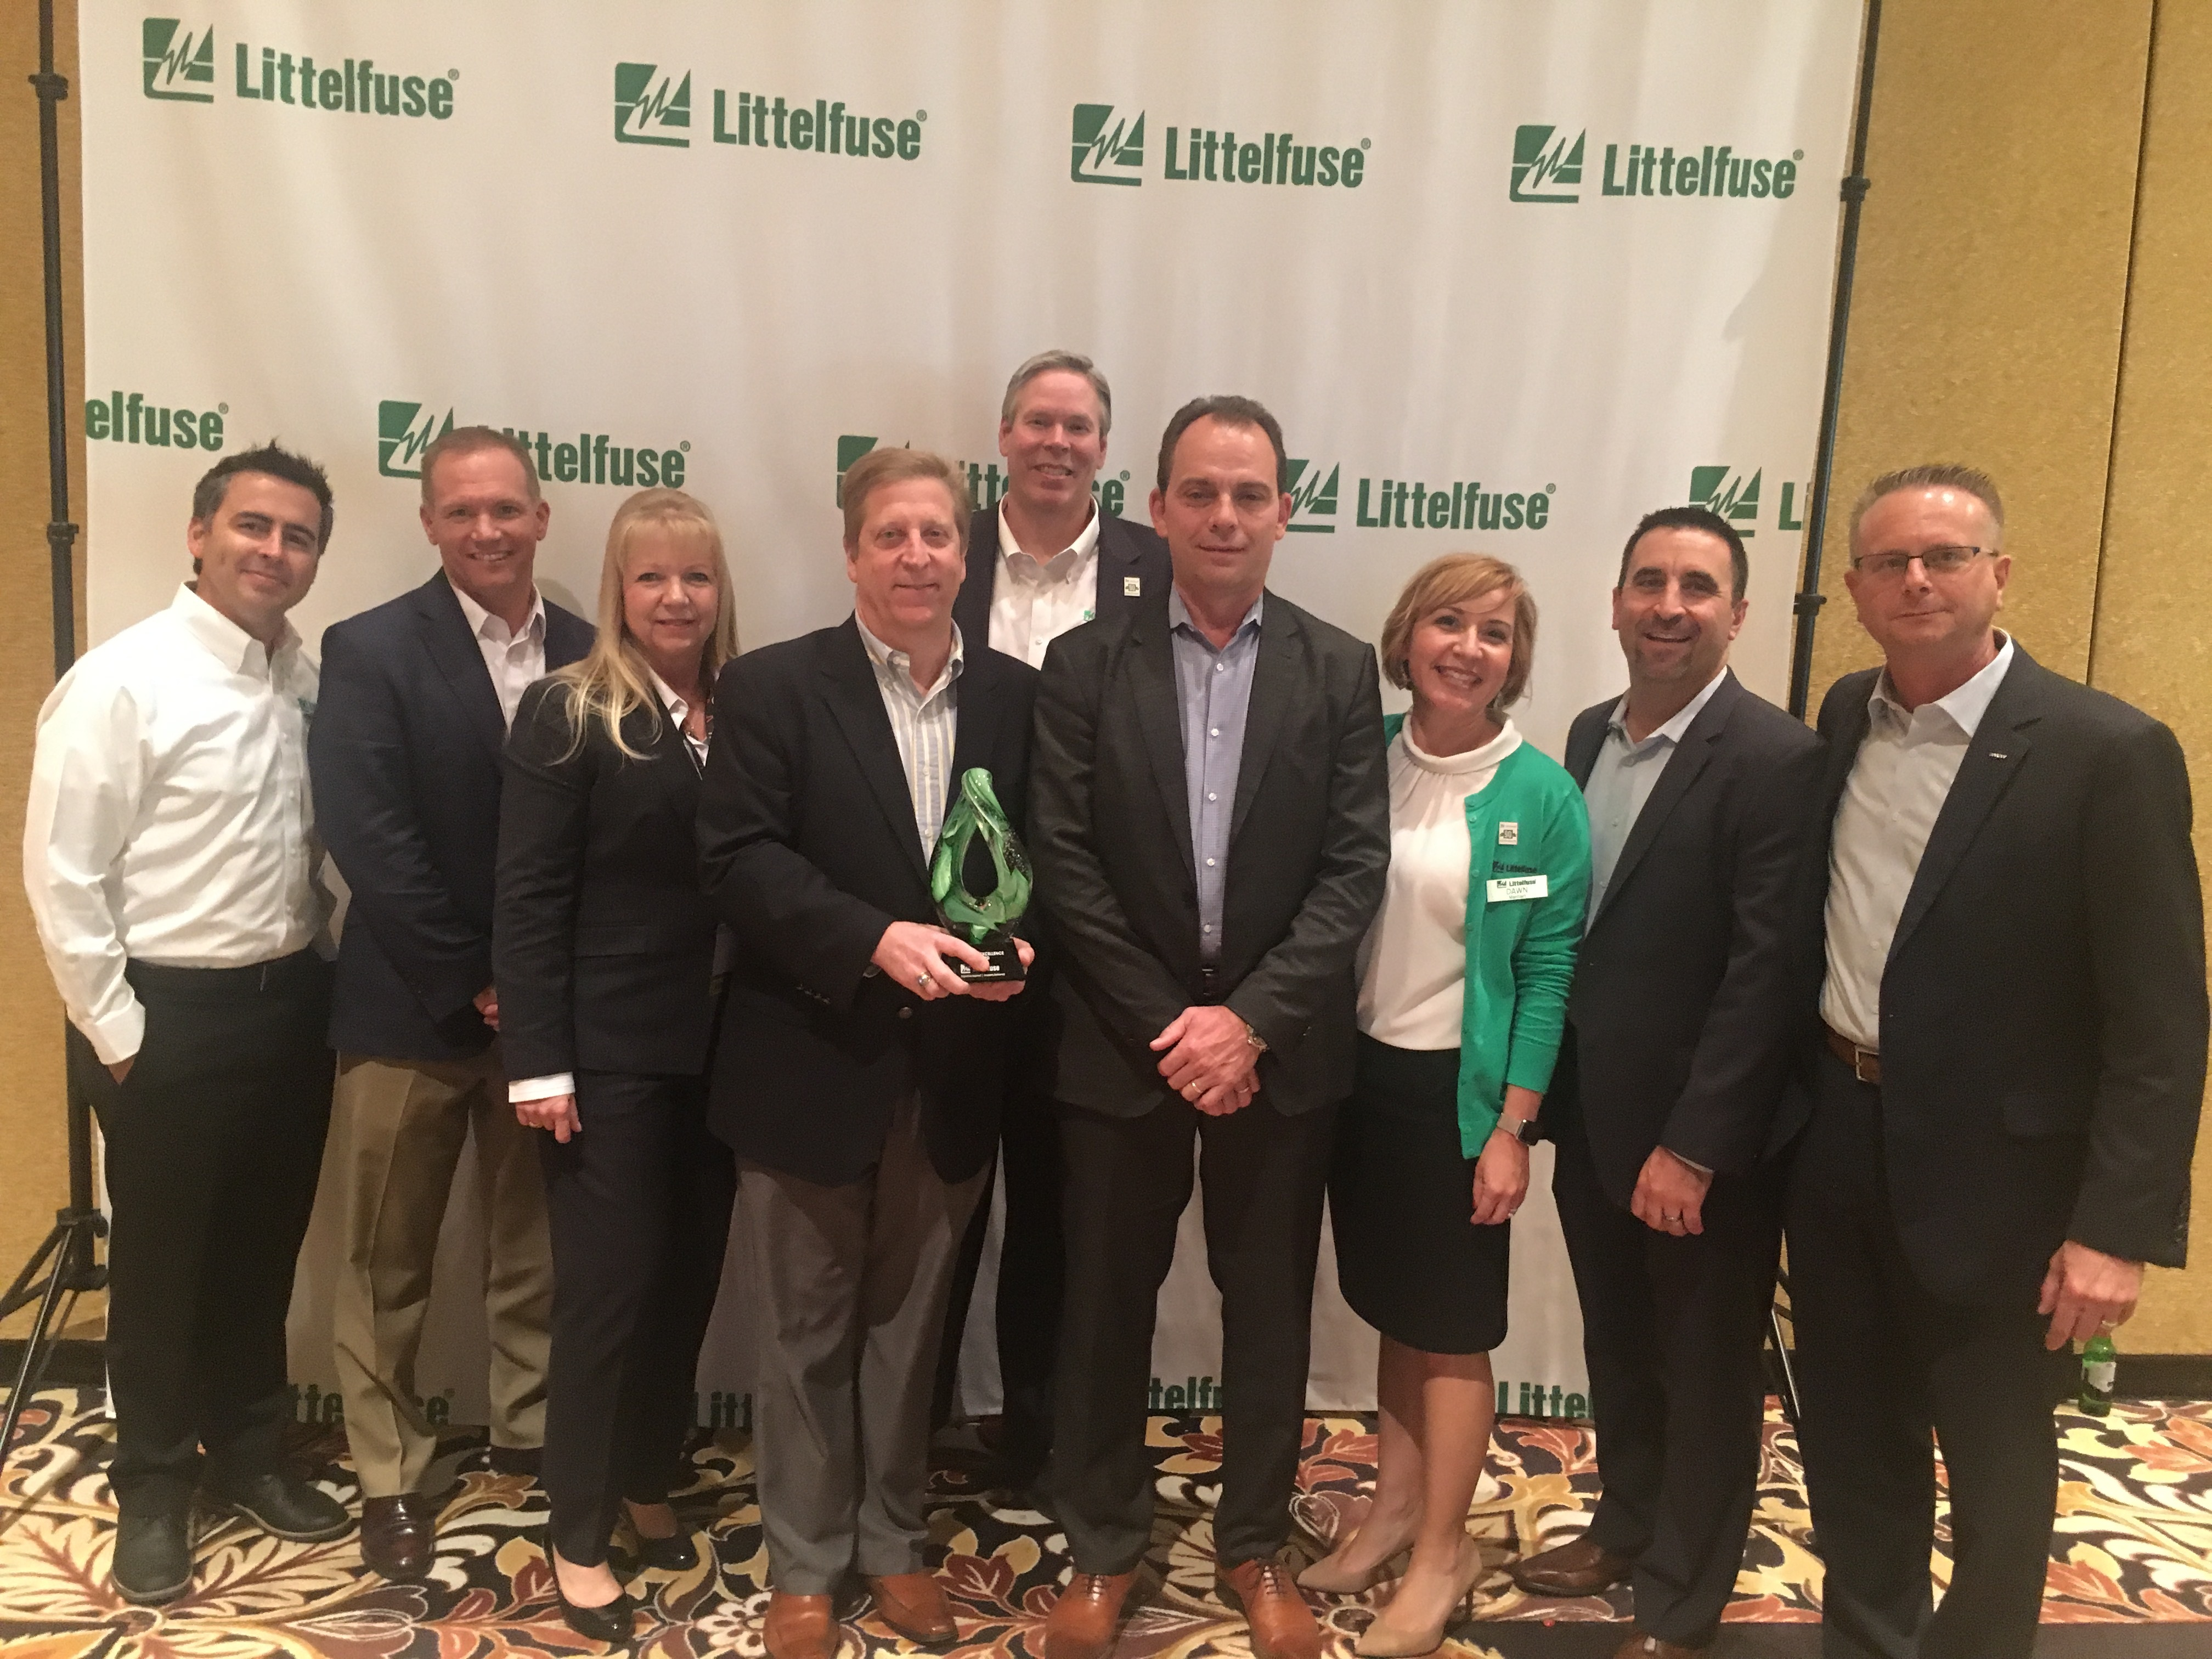 Littelfuse congratulates Arrow Electronics on winning the 2016 Volume Distributor of the Year award. Pictured (from left to right): Jason Lipps, Littelfuse distribution corporate account manager; John Drabik, Arrow VP & GM global PEMCO; Linda Rogers, Arrow corporate supplier manager; Alan Bird, Arrow president Americas; Dave Heinzmann, Littelfuse president and chief executive officer; Bruce Jones, Arrow VP PEMCO Americas; Dawn Manhart, Littelfuse director channel sales; Vince Pastor, Arrow director; passive business unit; Kent Smith, Arrow VP North American sales. (Photo: Business Wire)